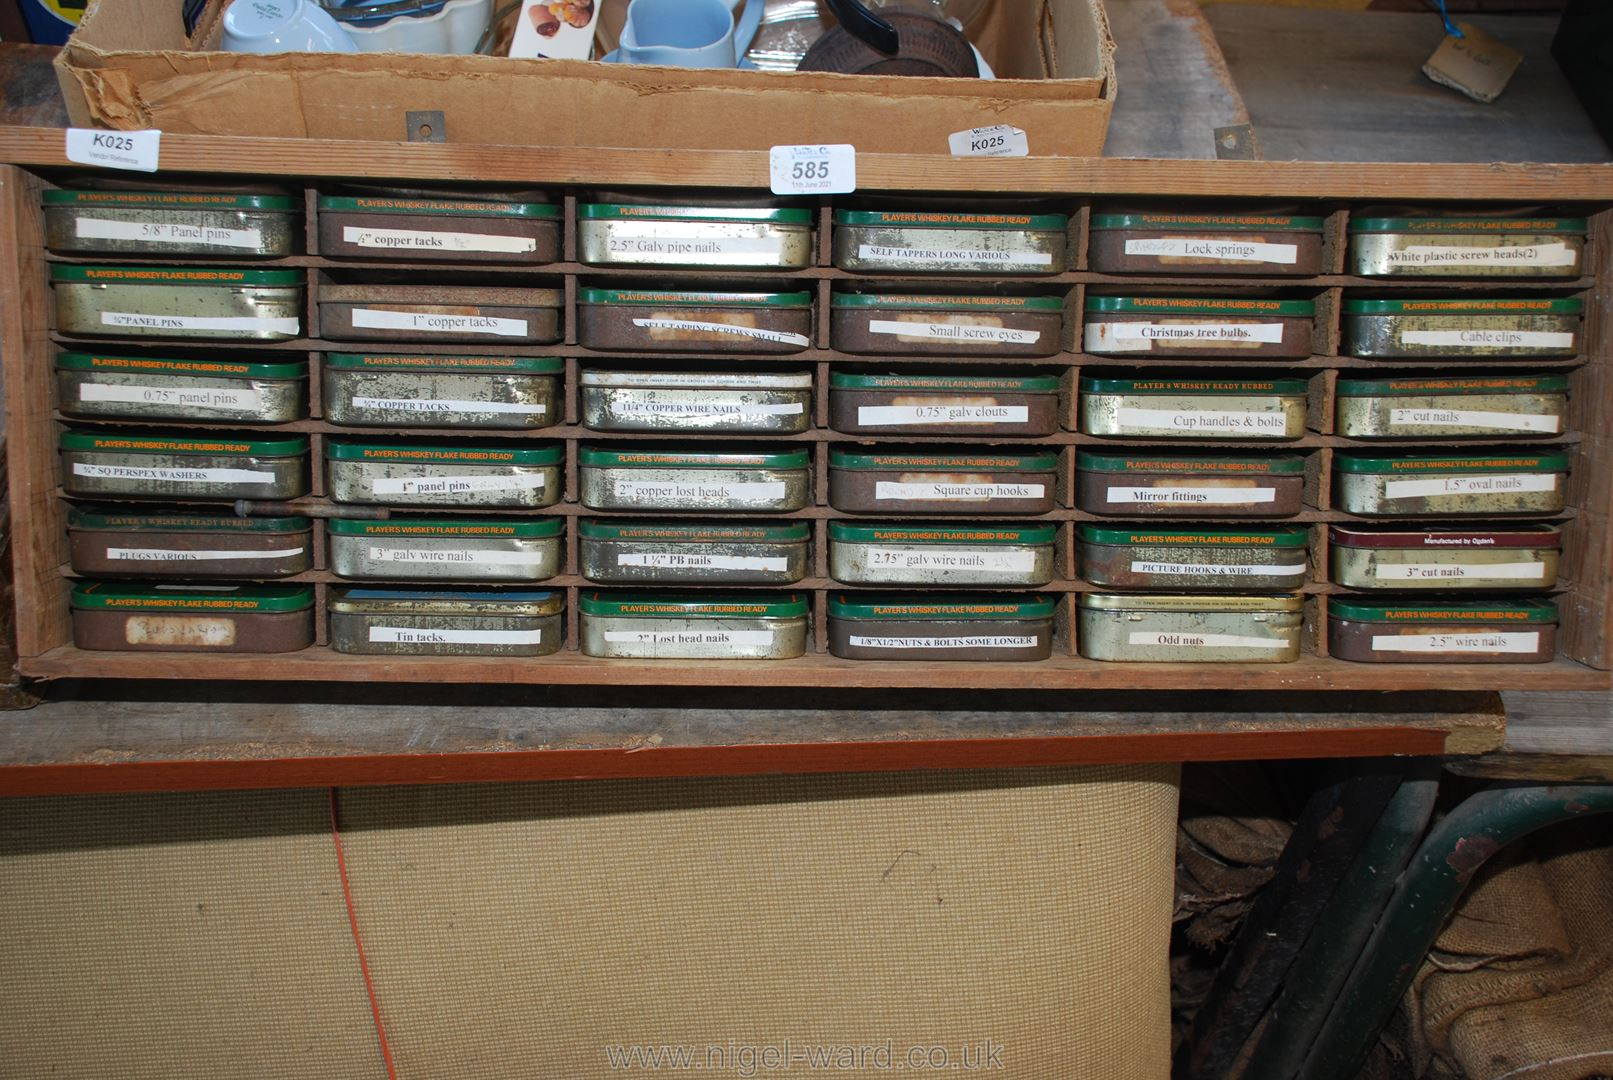 A shelf unit containing 30 tins of various screws and fixings.